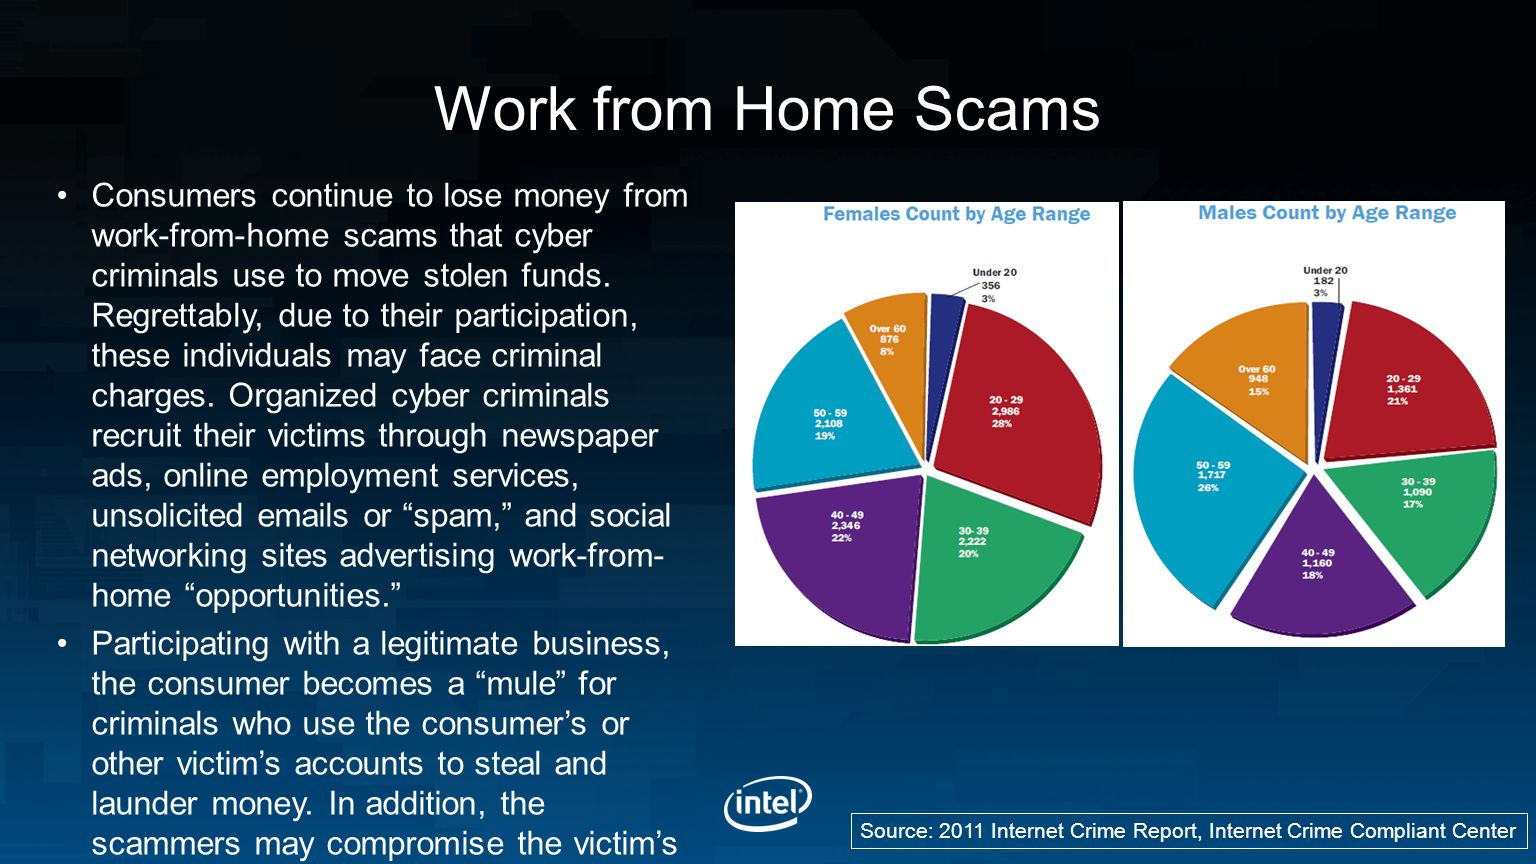 Work from Home Scams Consumers continue to lose money from work-from-home scams that cyber criminals use to move stolen funds. Regrettably, due to the